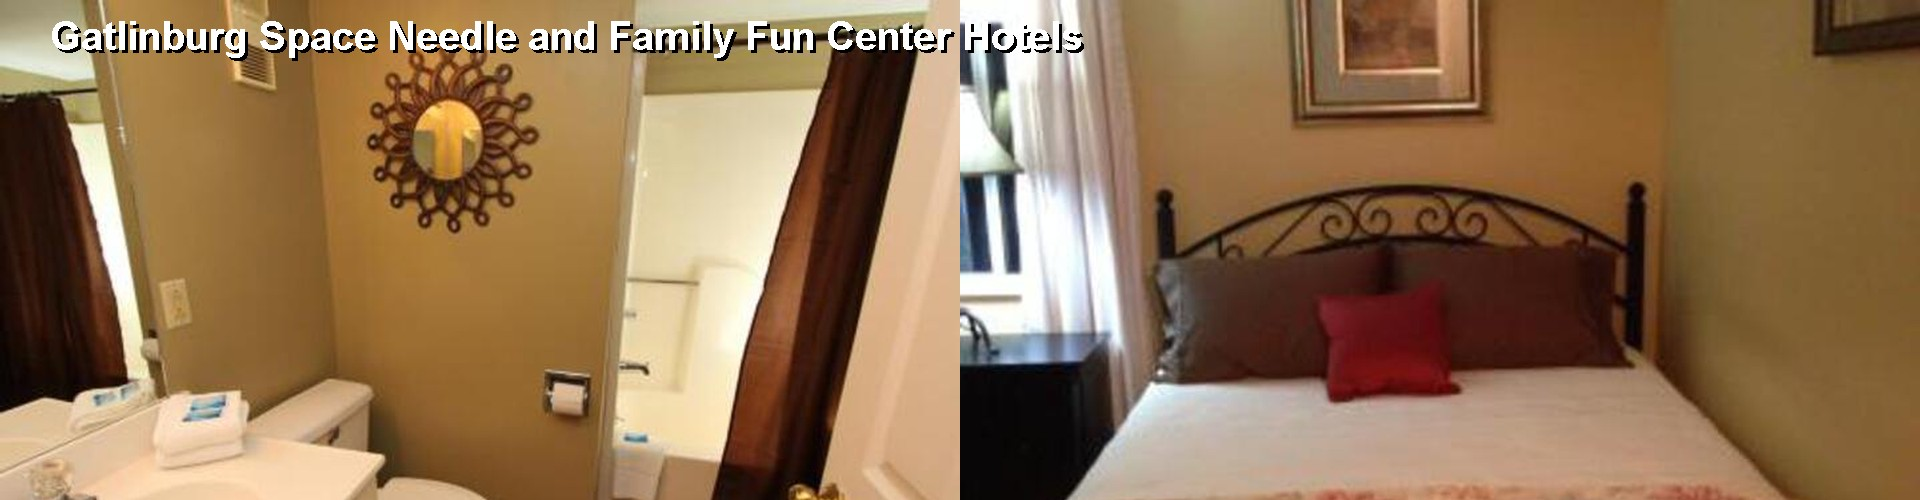 5 Best Hotels near Gatlinburg Space Needle and Family Fun Center